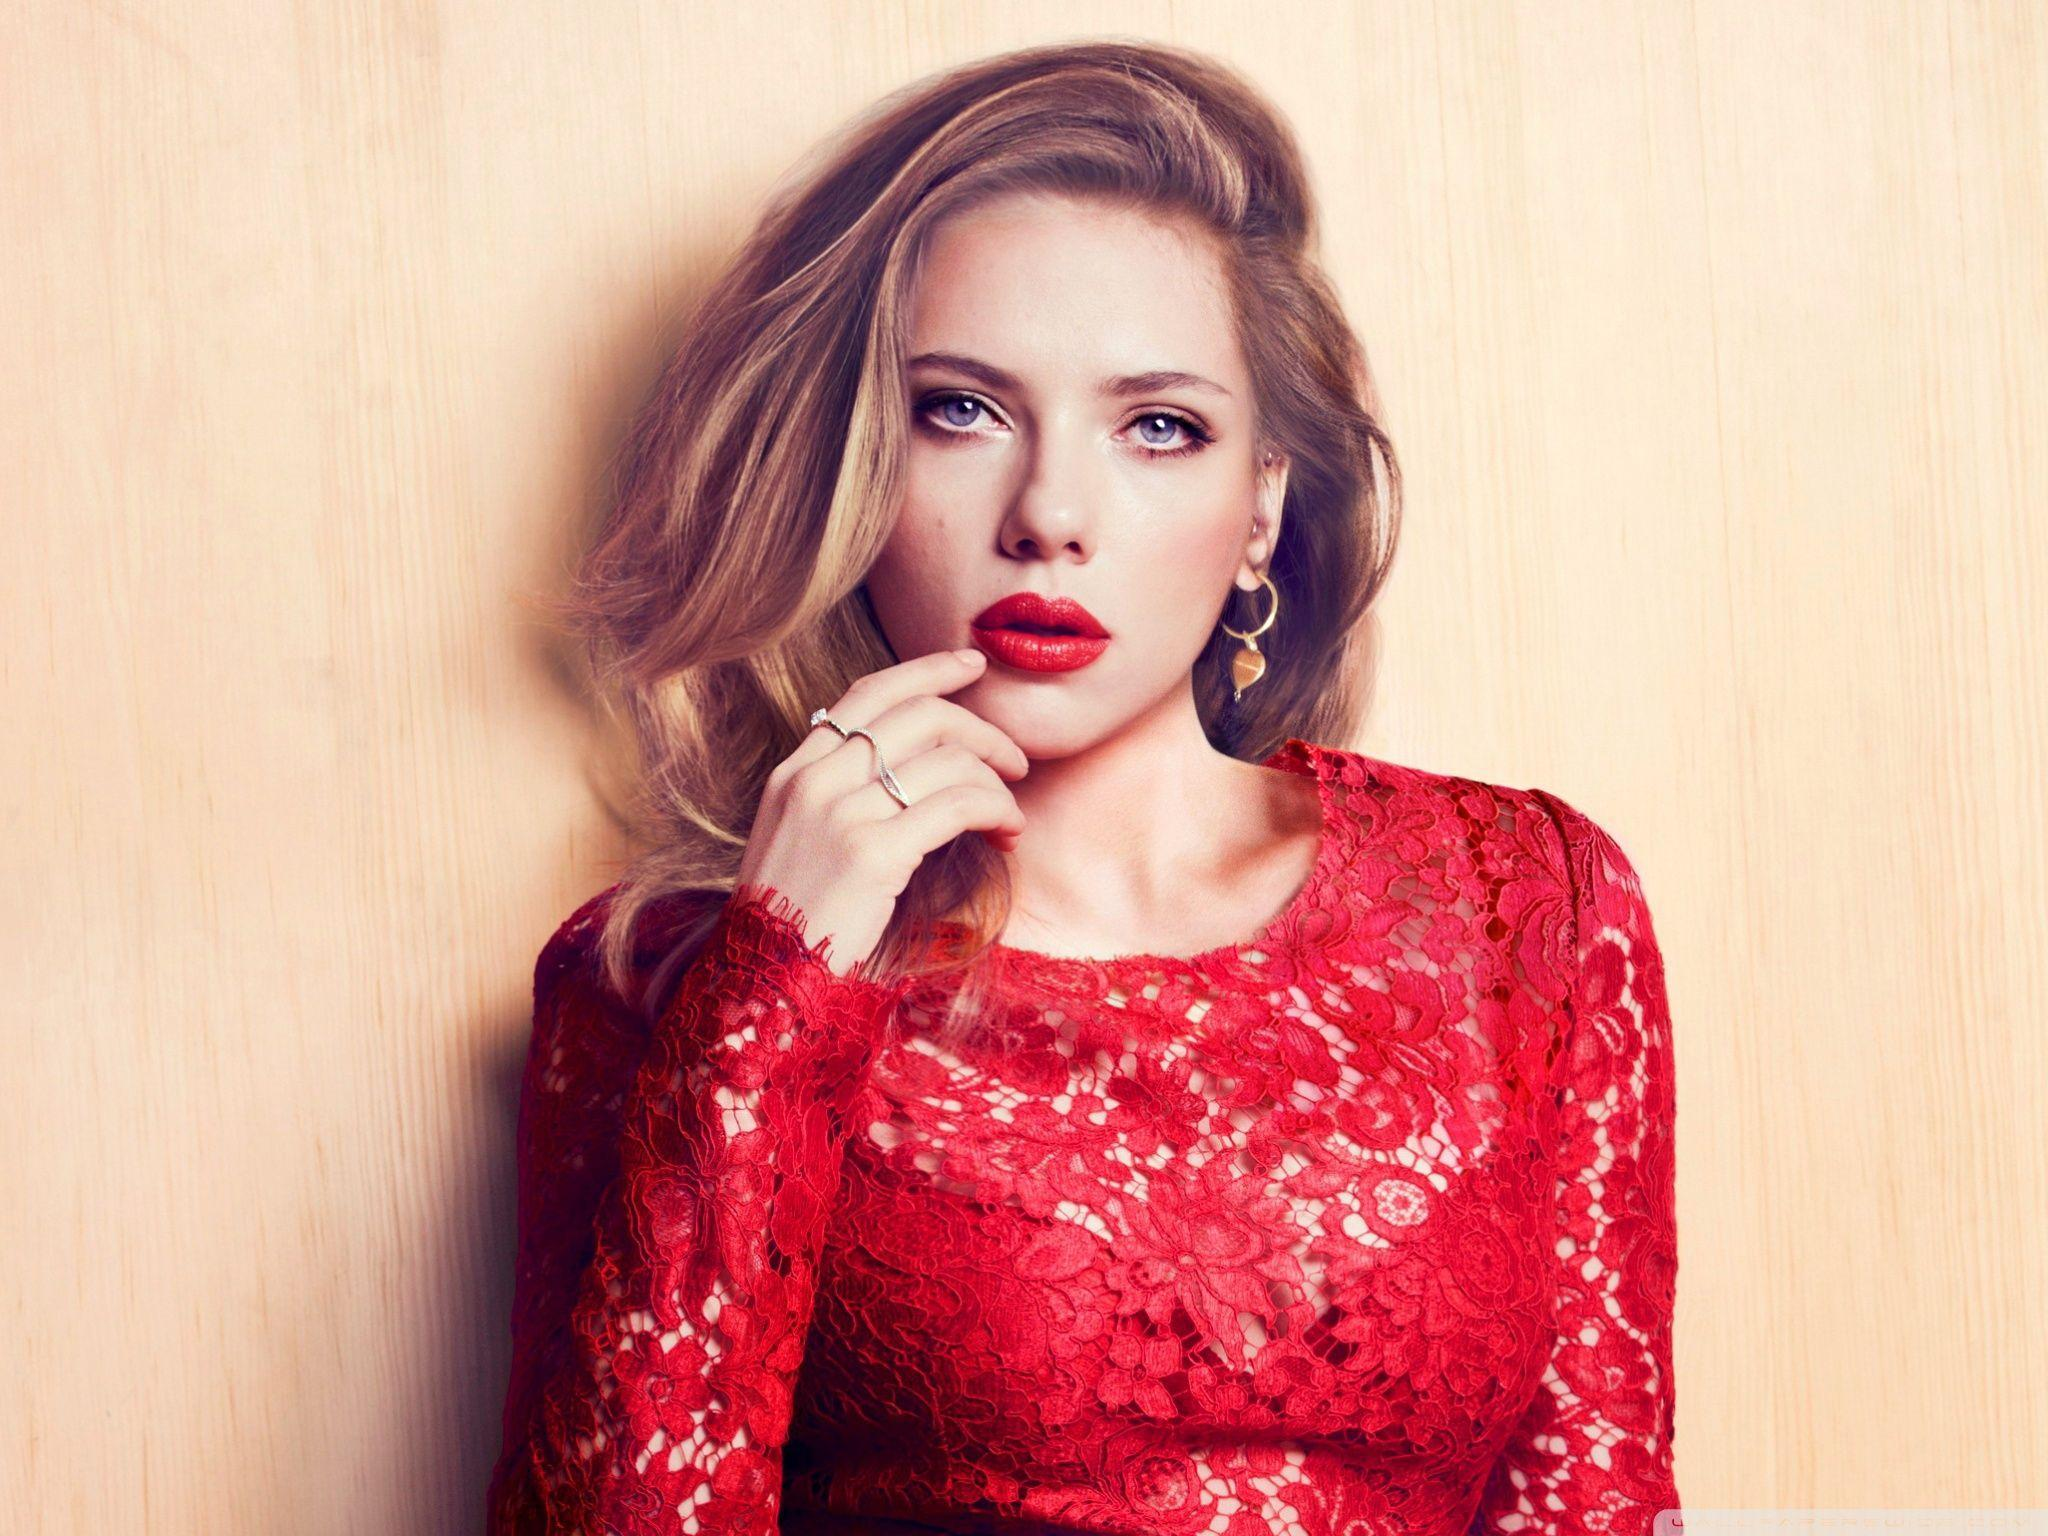 WallpapersWide.com | Scarlett Johansson HD Desktop Wallpapers for ...